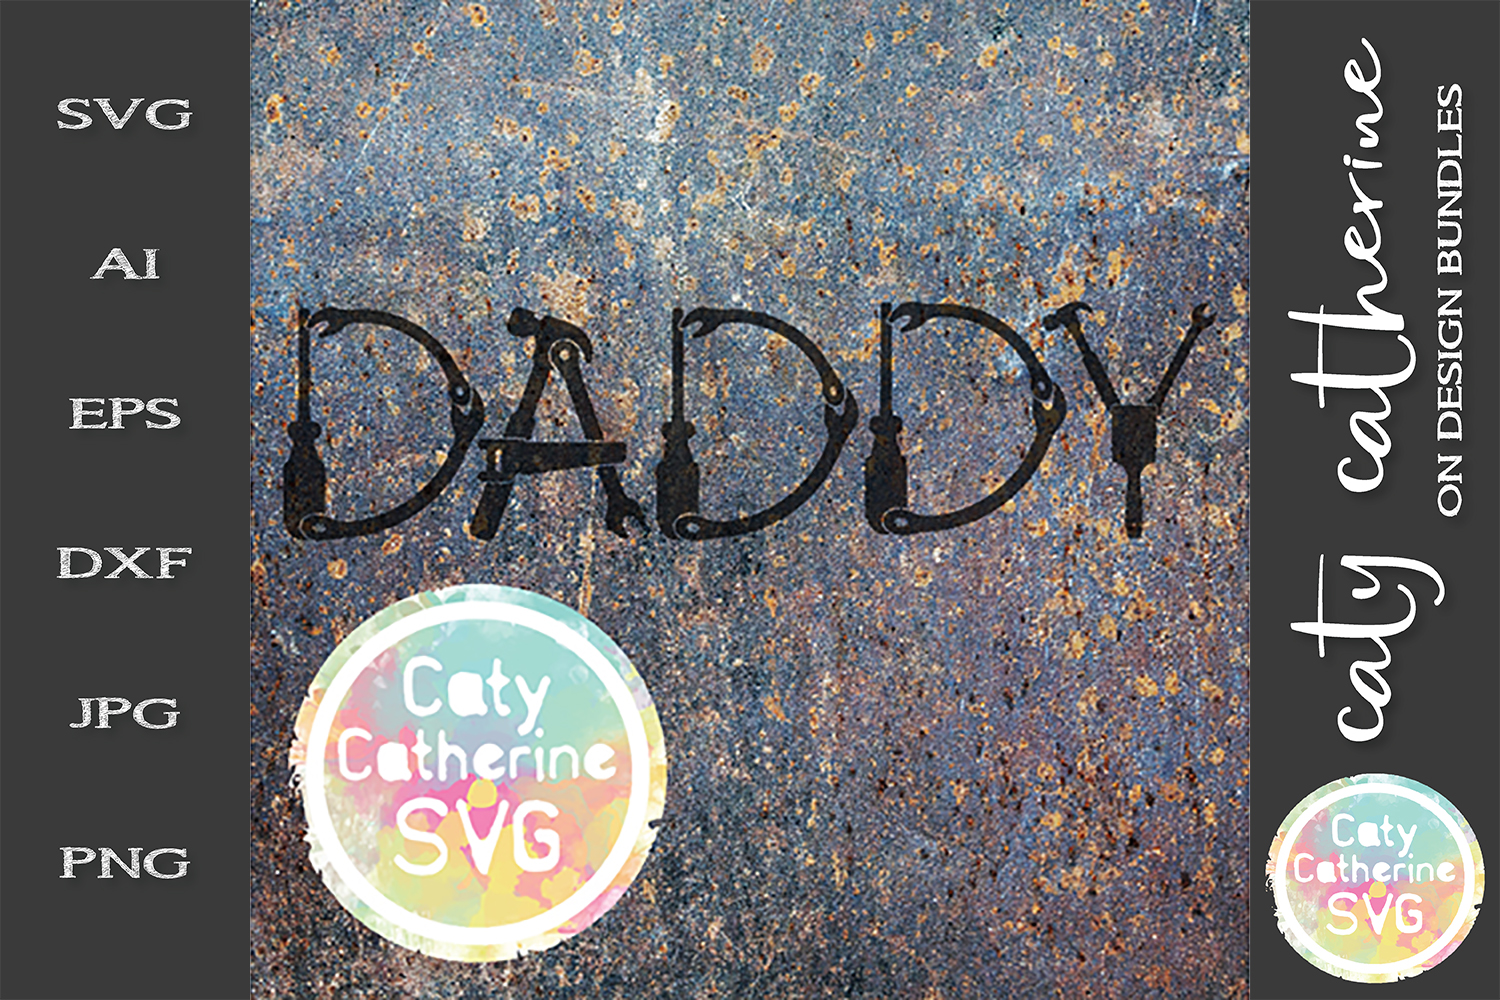 Daddy Father's Day Tool Theme SVG Cut File example image 1